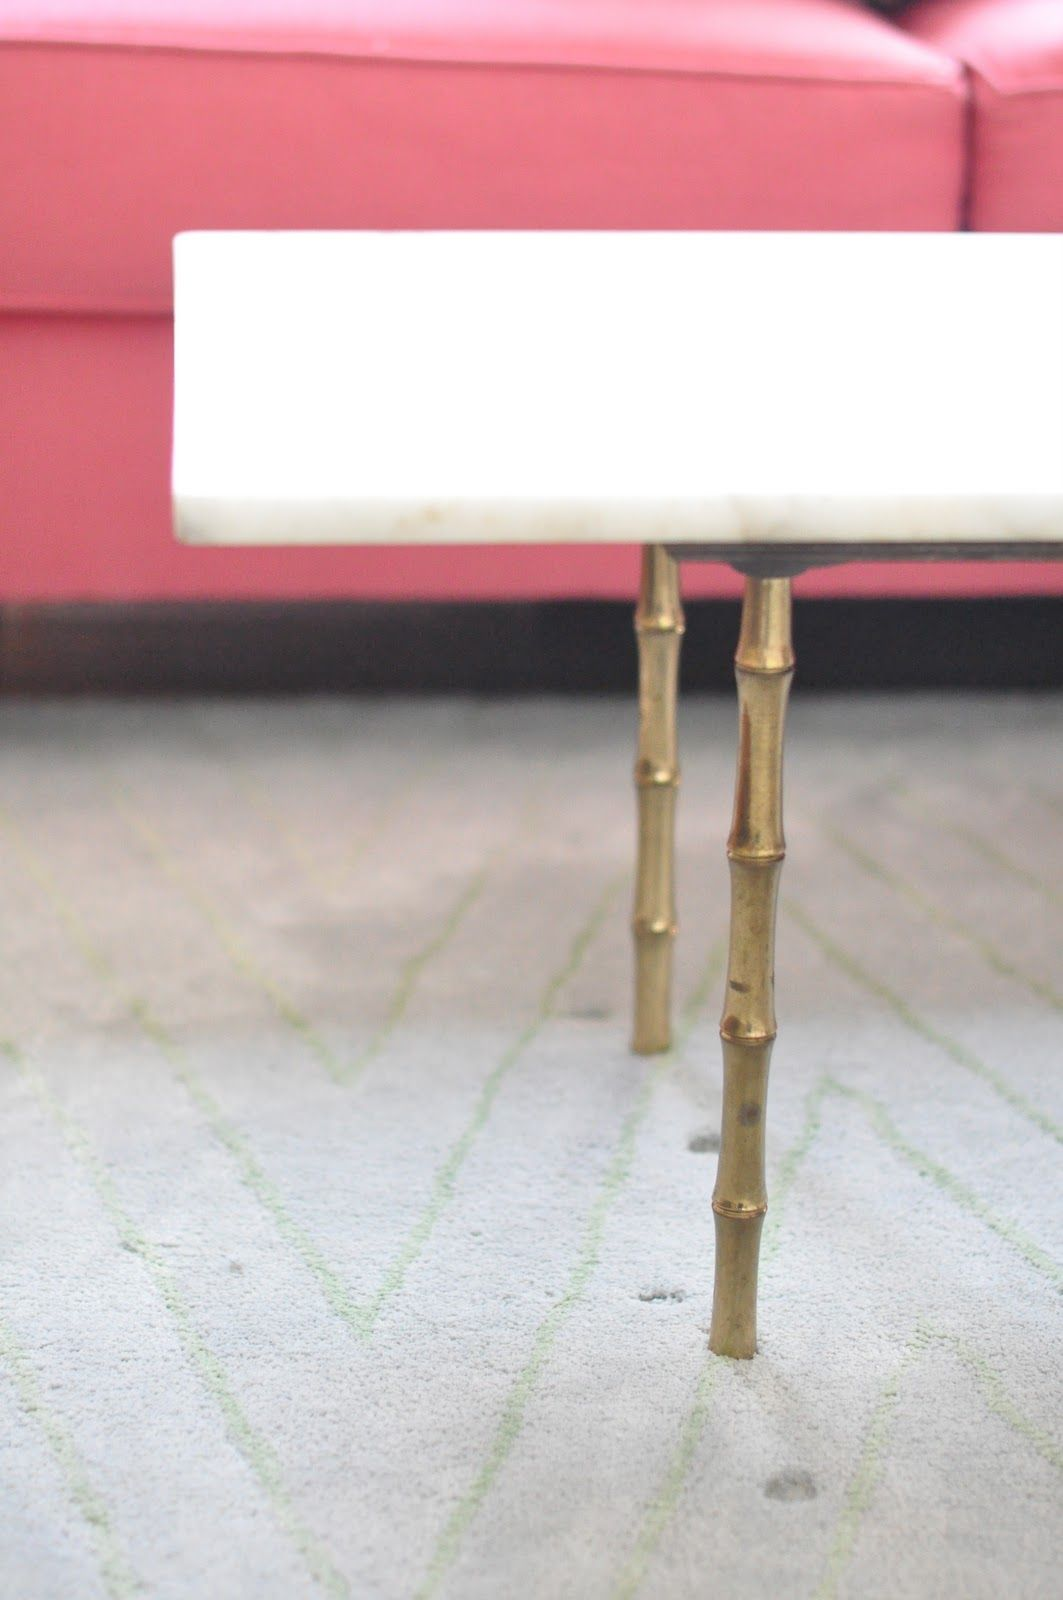 Gold Bamboo Table Legs For White Shelf Tables Also, An Idea For Vanity, But